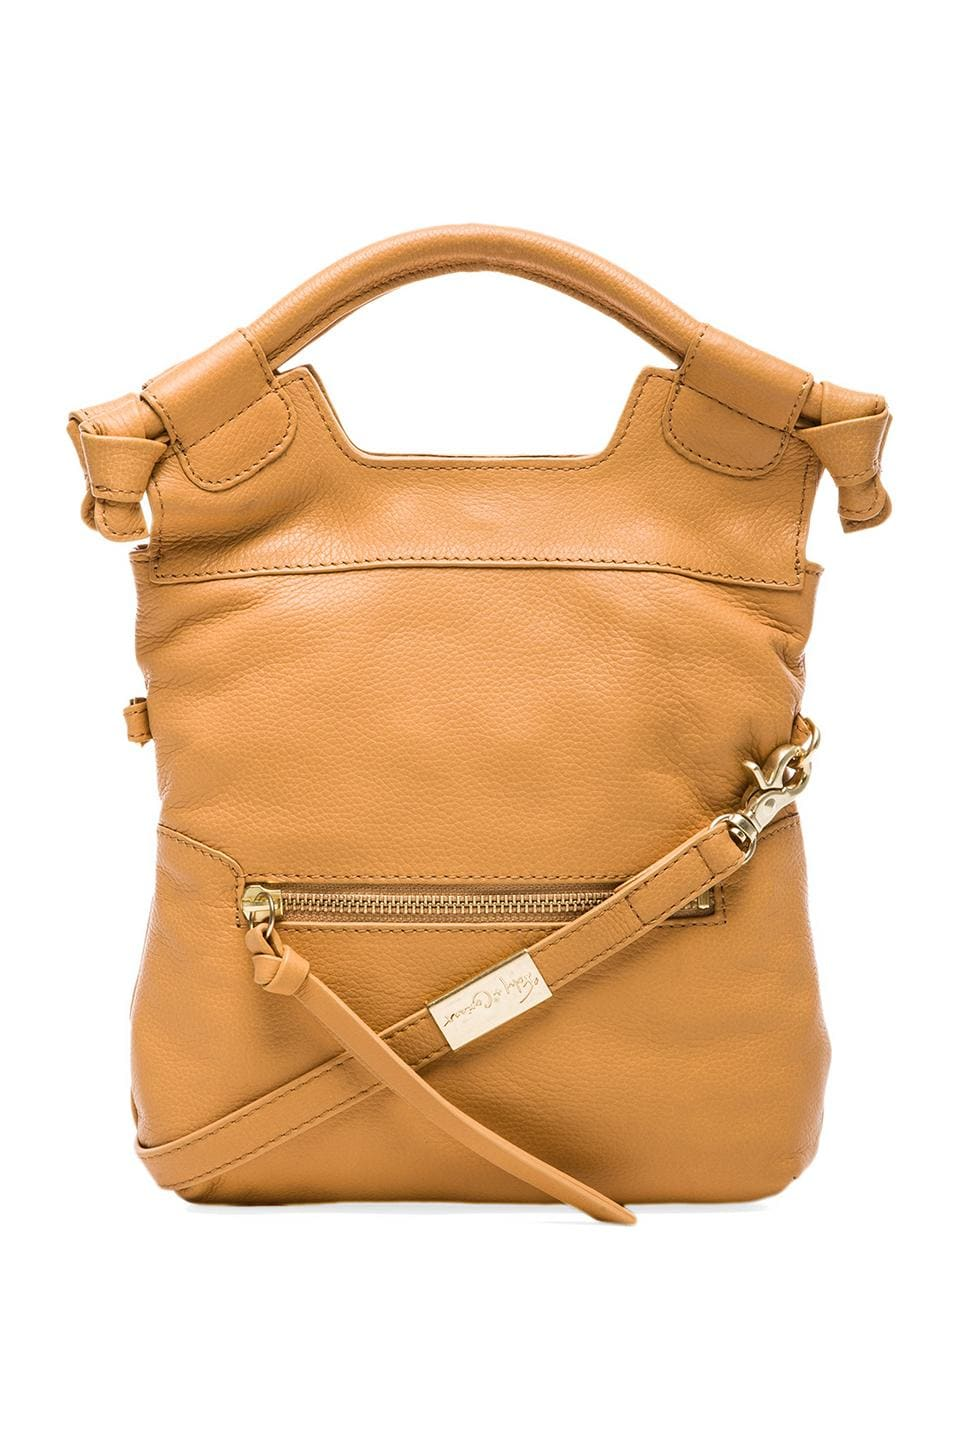 Foley + Corinna Disco City Crossbody in Baja